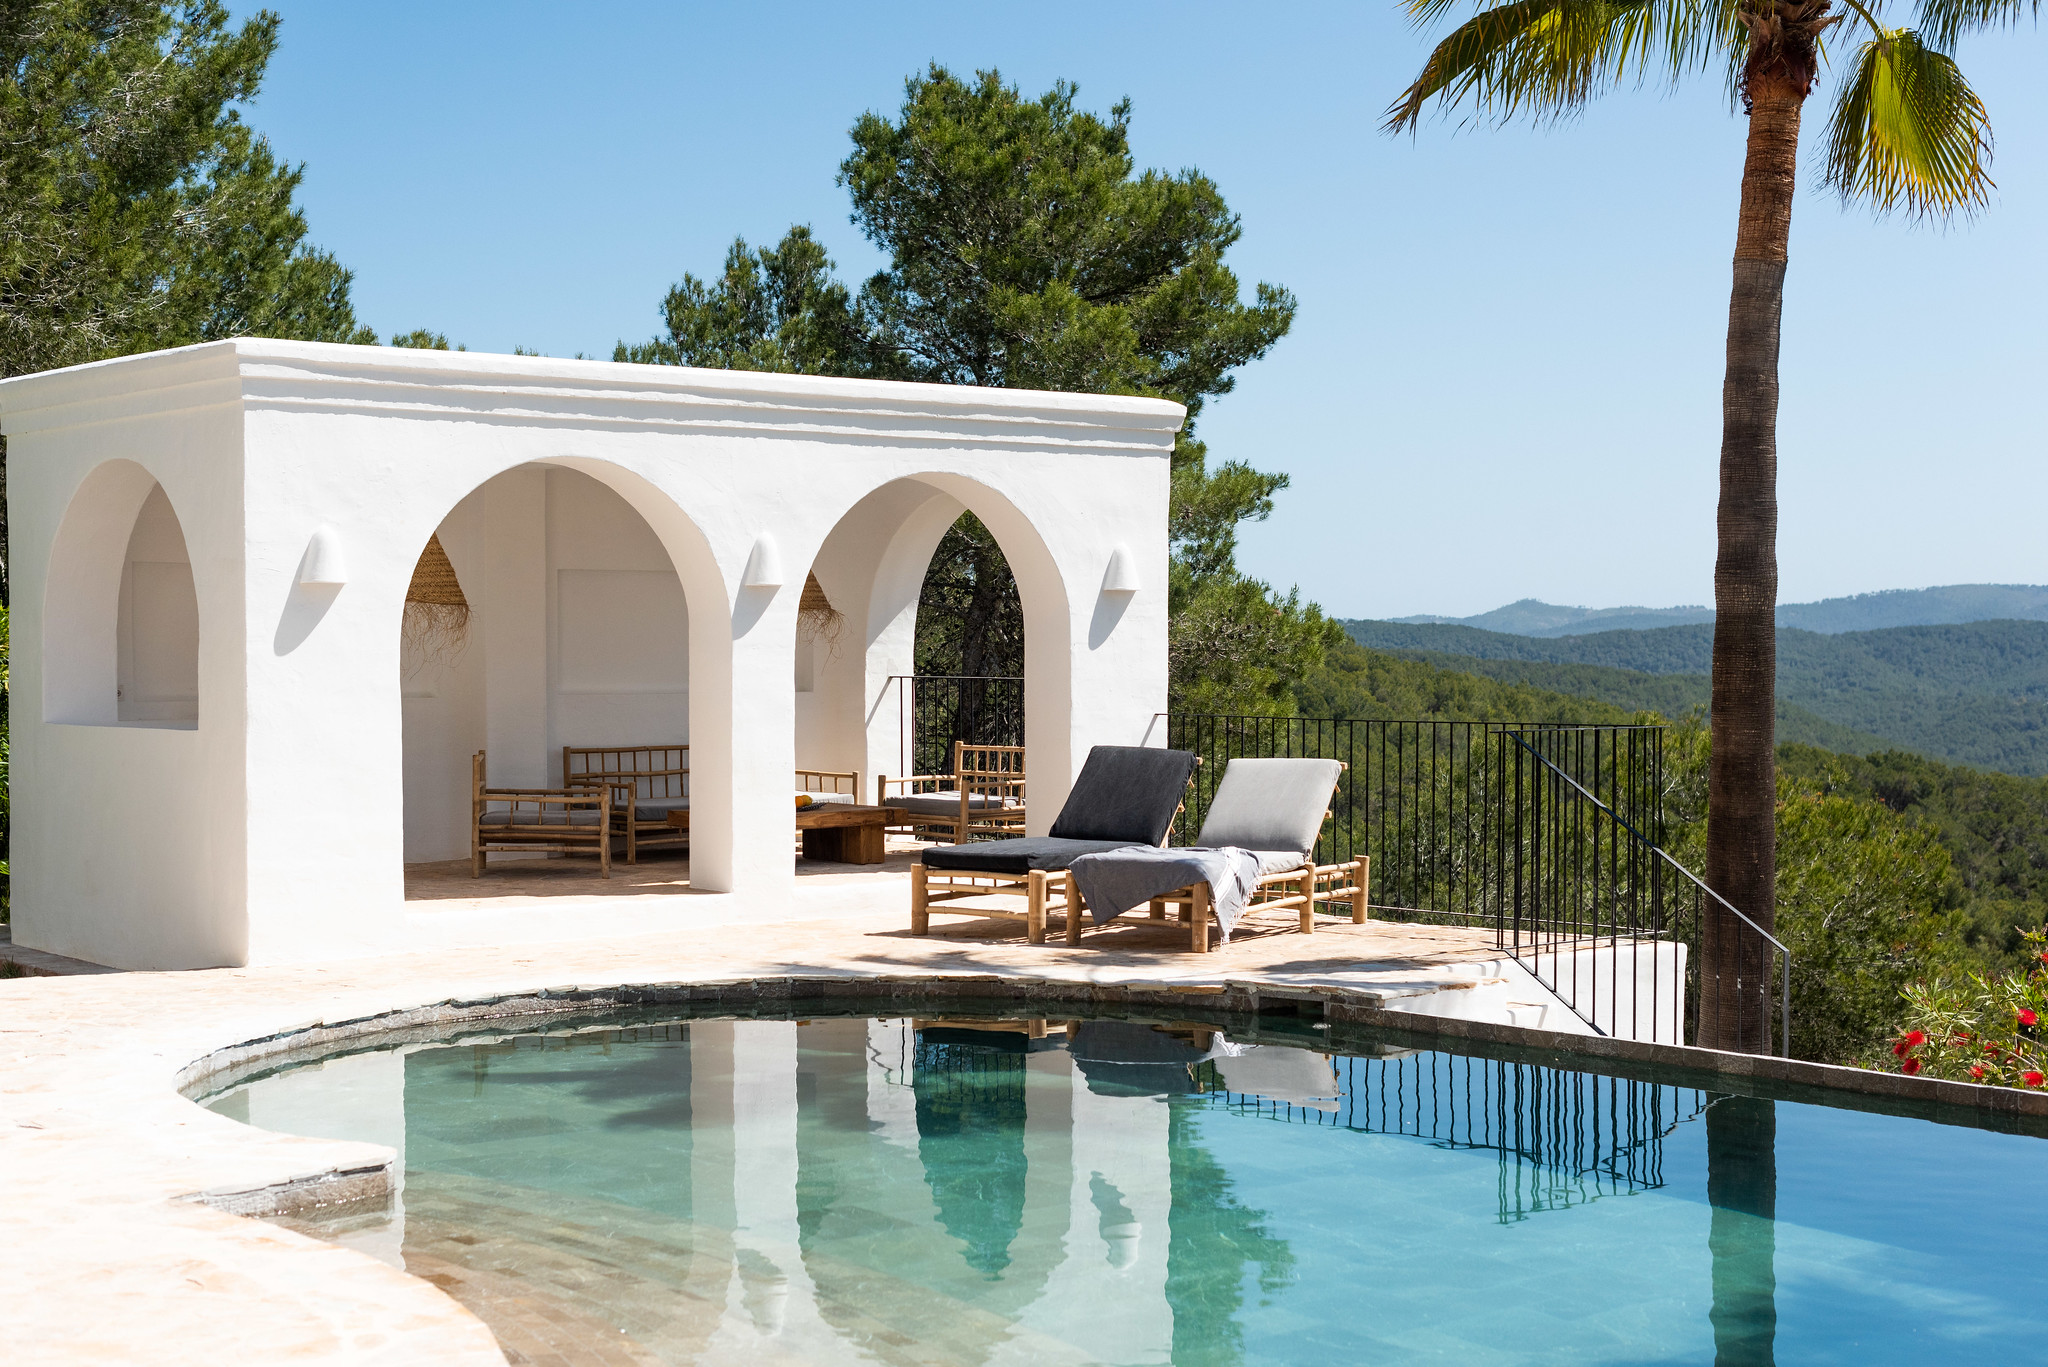 https://www.white-ibiza.com/wp-content/uploads/2020/05/white-ibiza-villas-can-cactus-shaded.seating.jpg